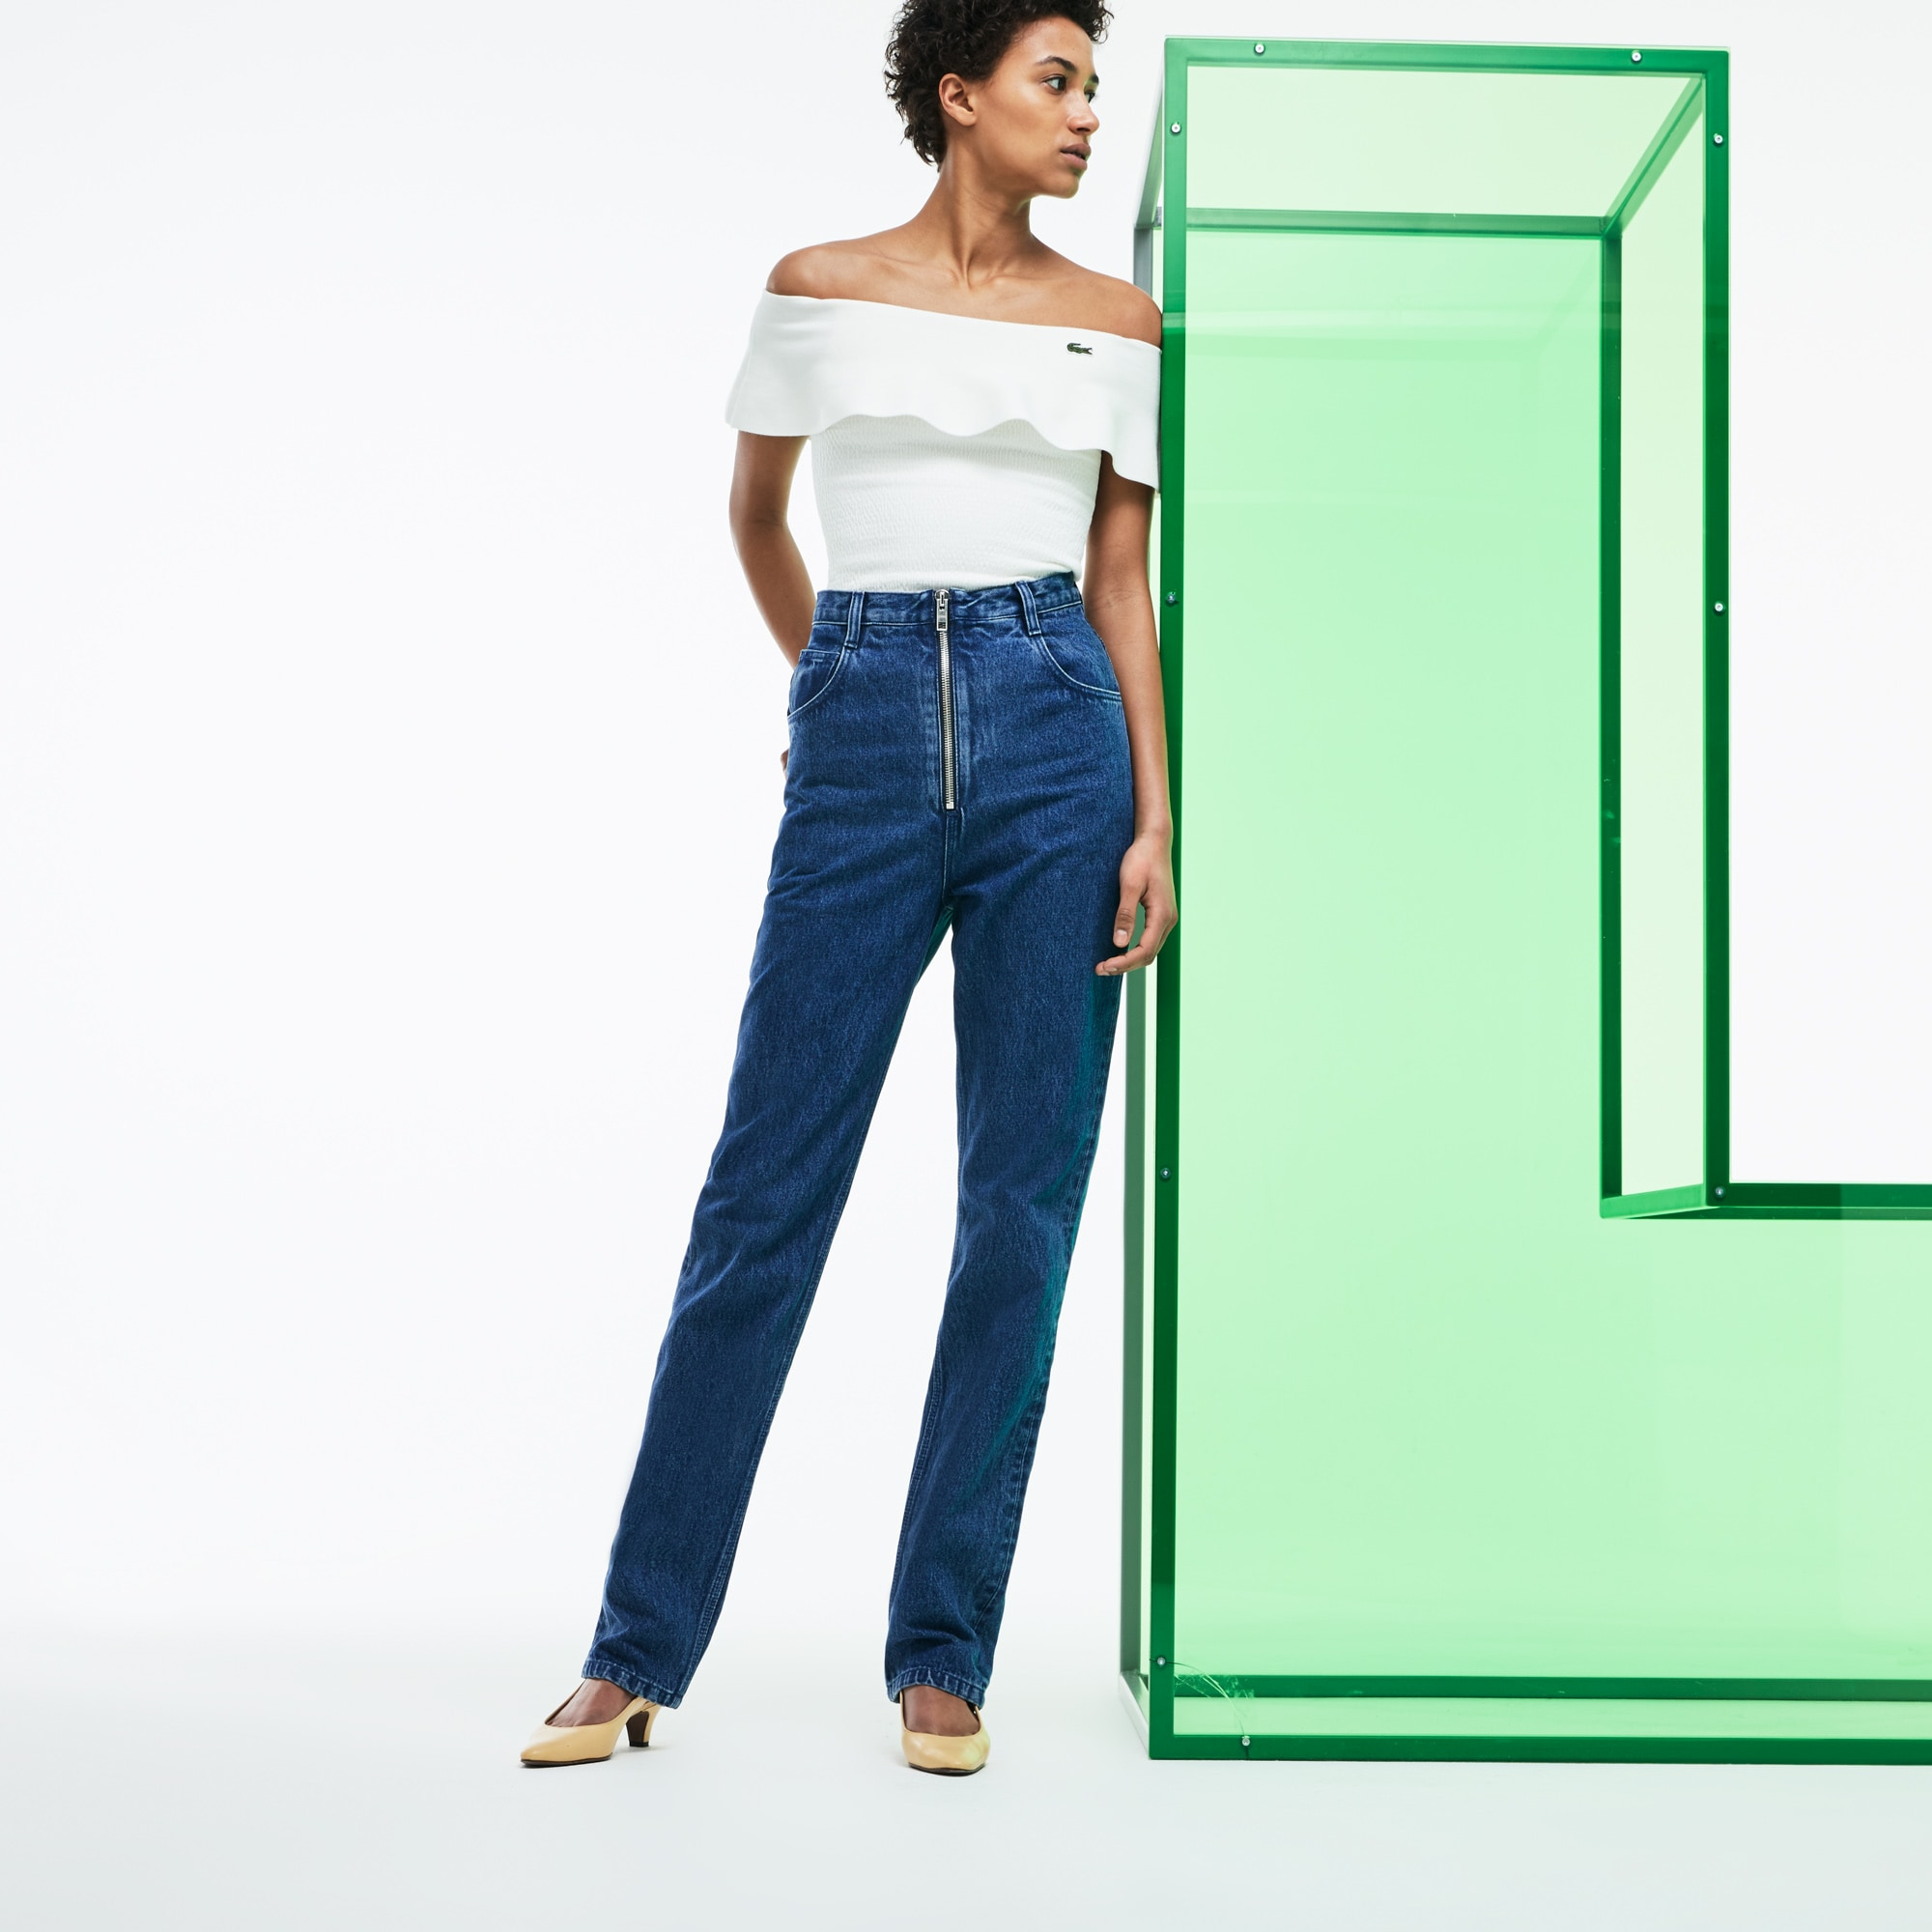 Women's Fashion Show High-Waisted Denim Jeans